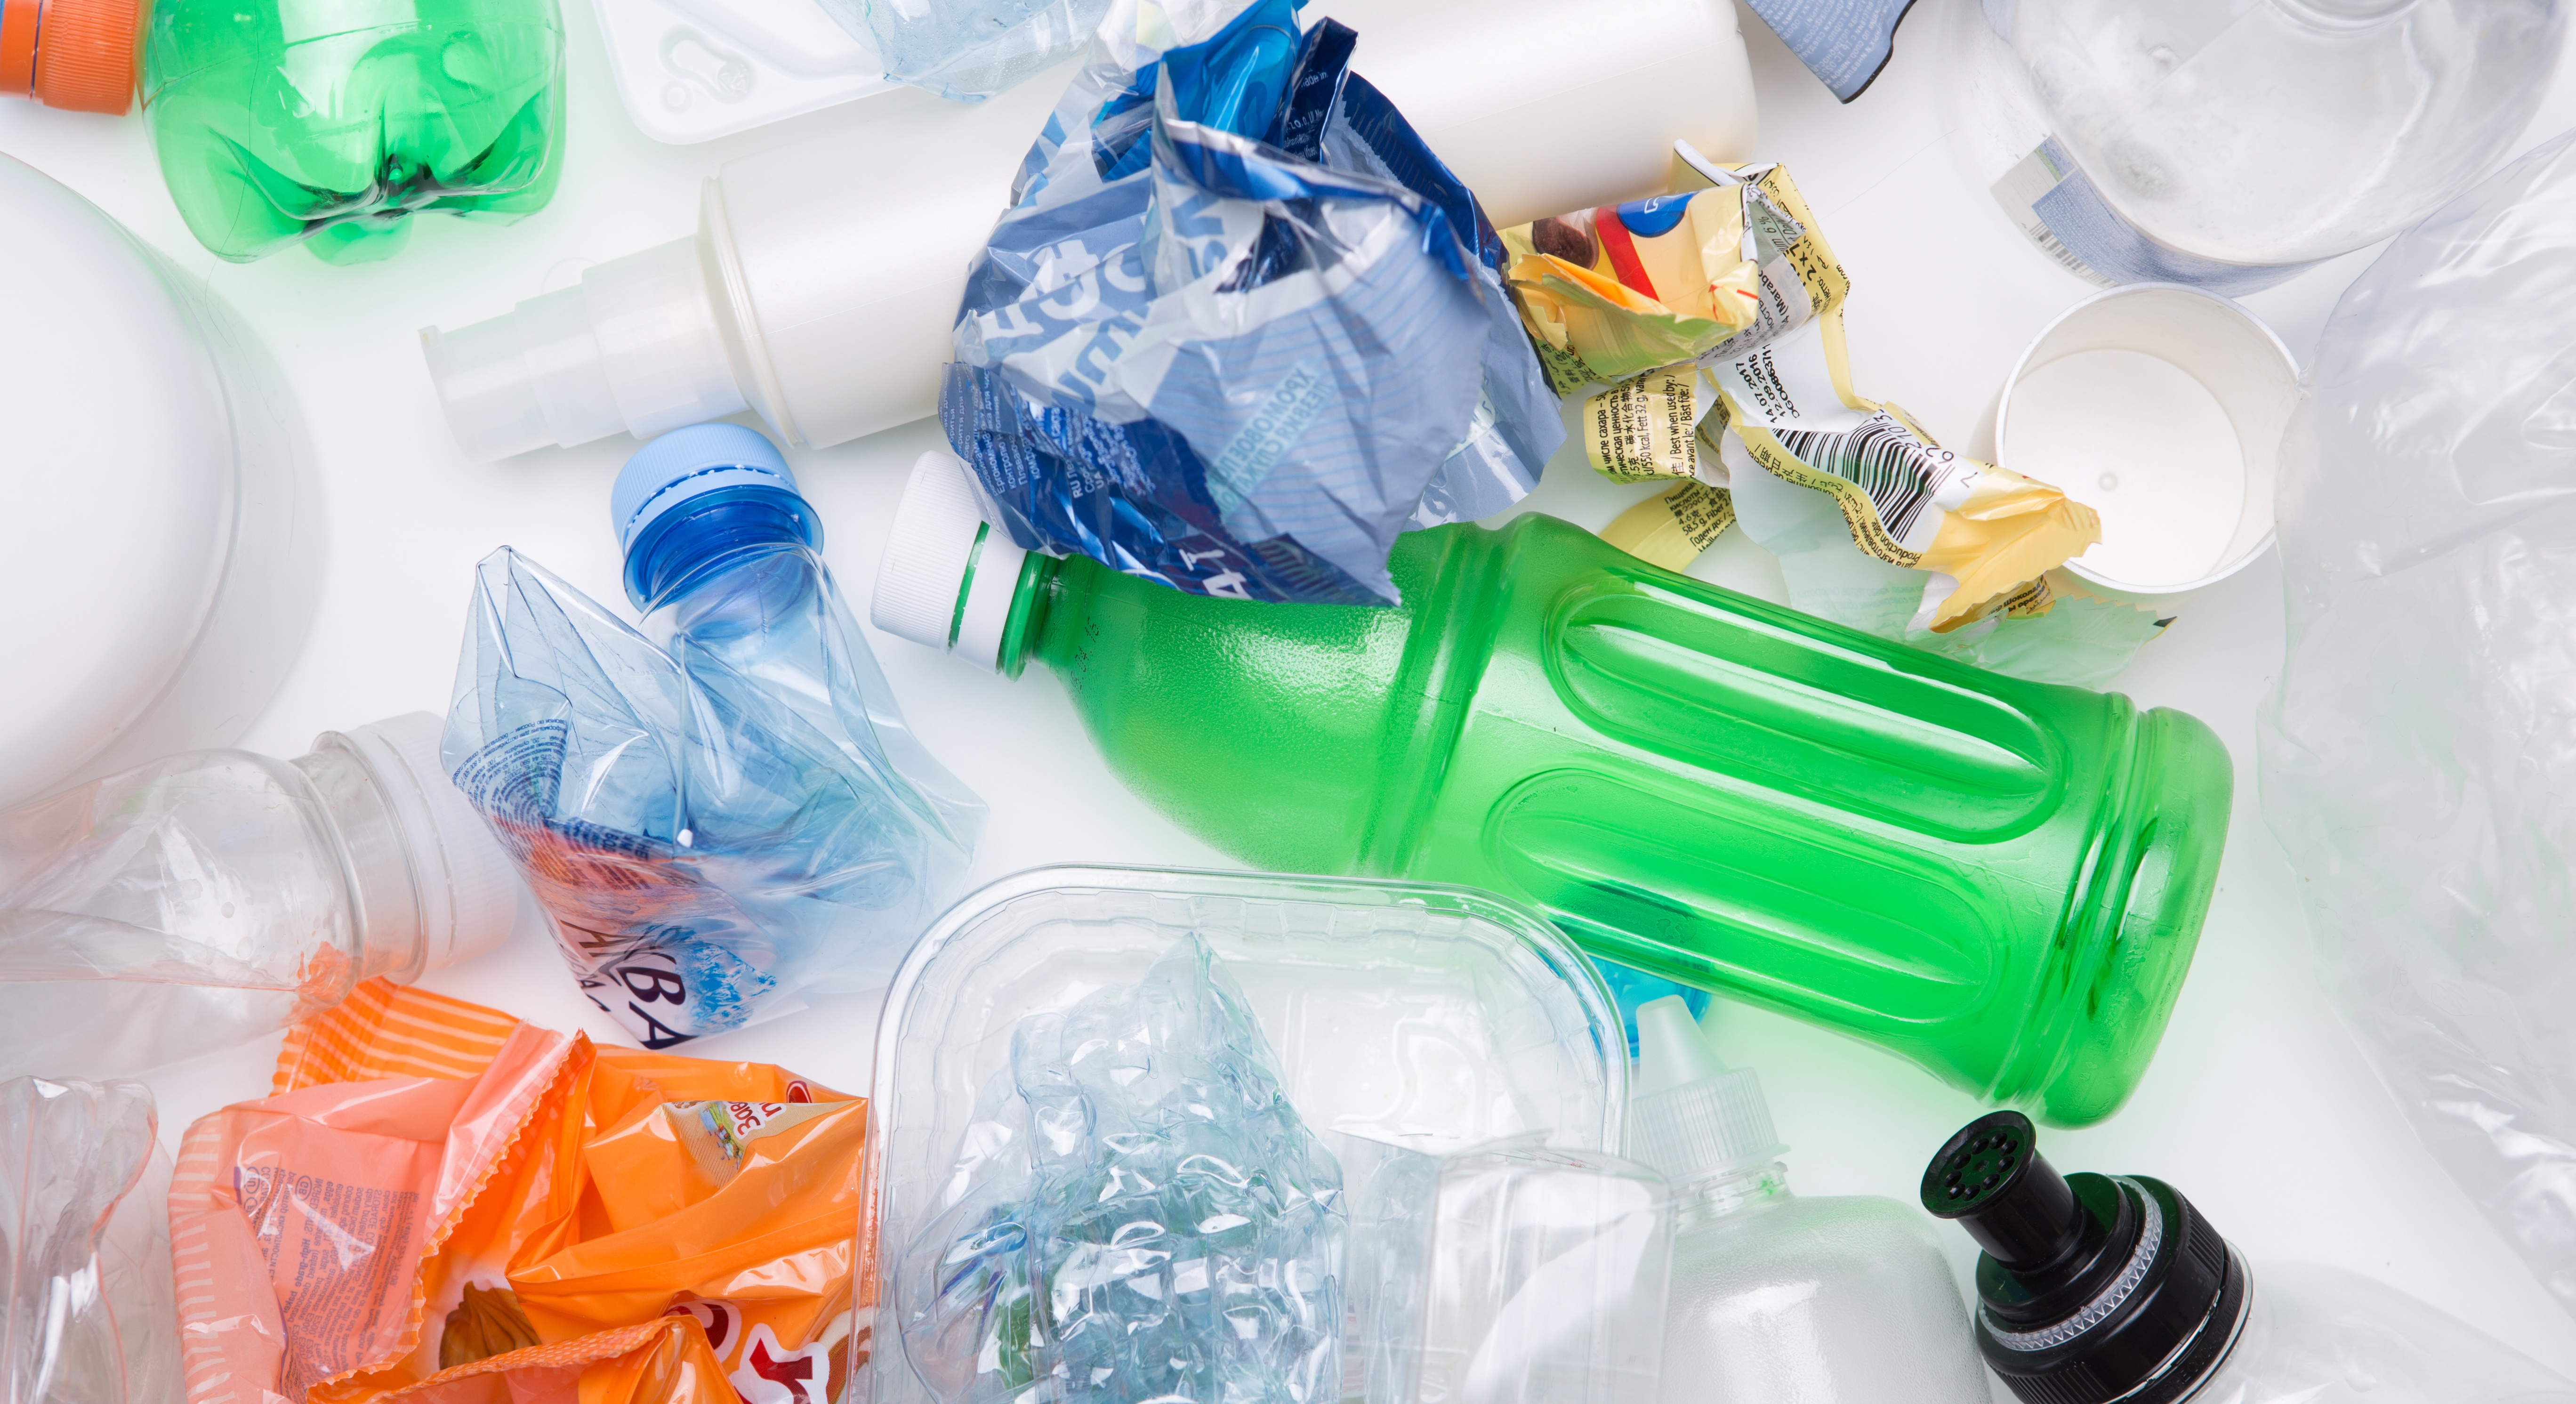 Plastics & packaging